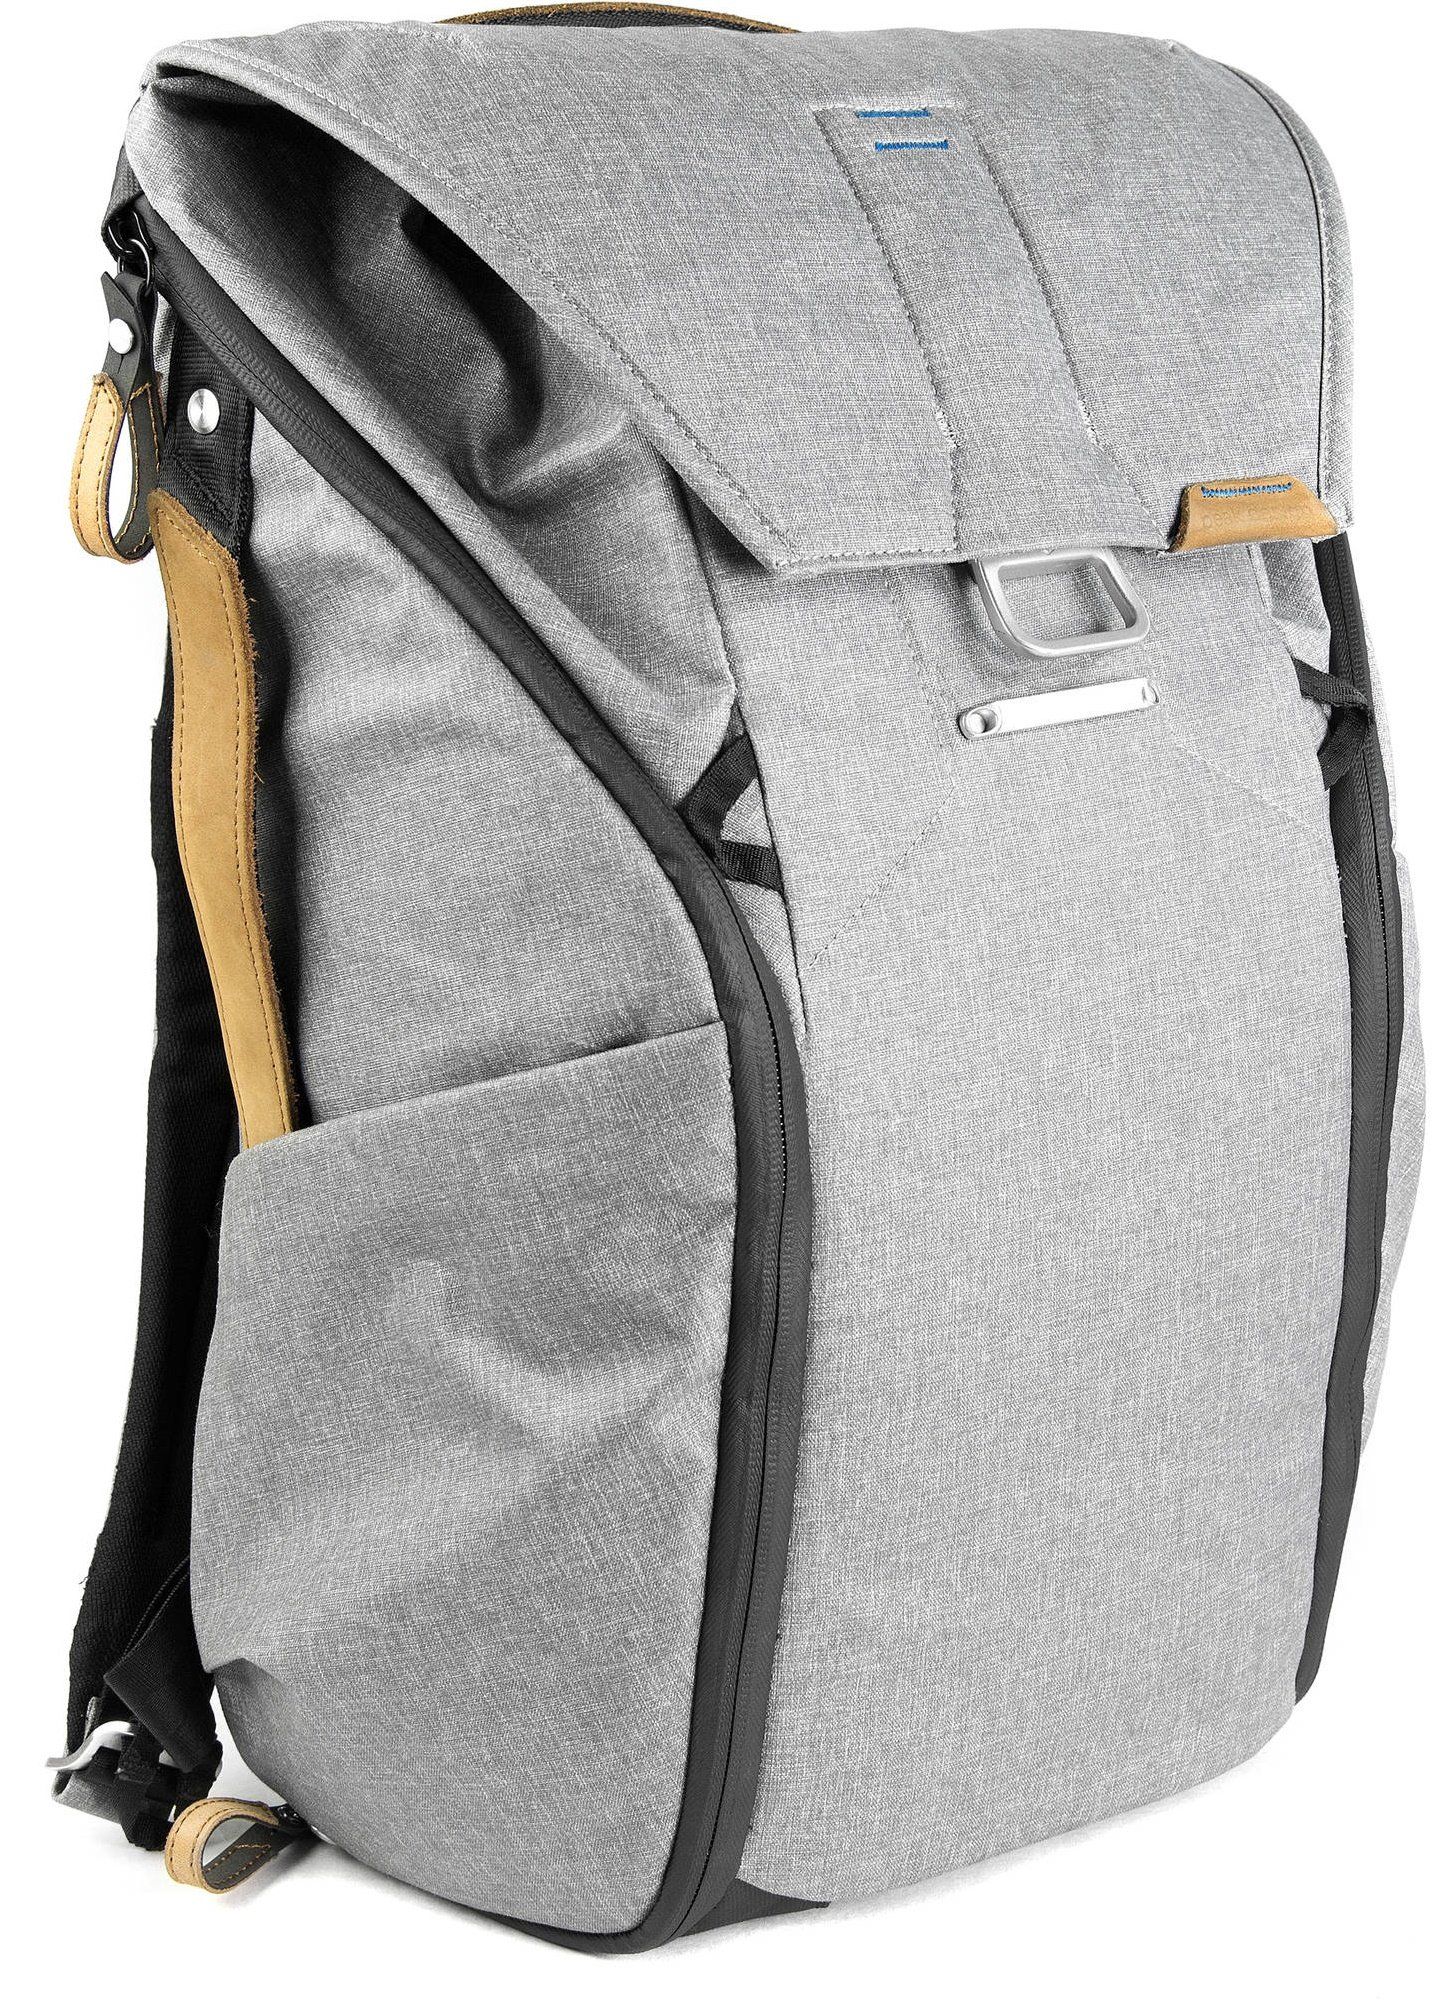 PEAK DESIGN The Everyday Backpack 30L - světle šedý fotobatoh